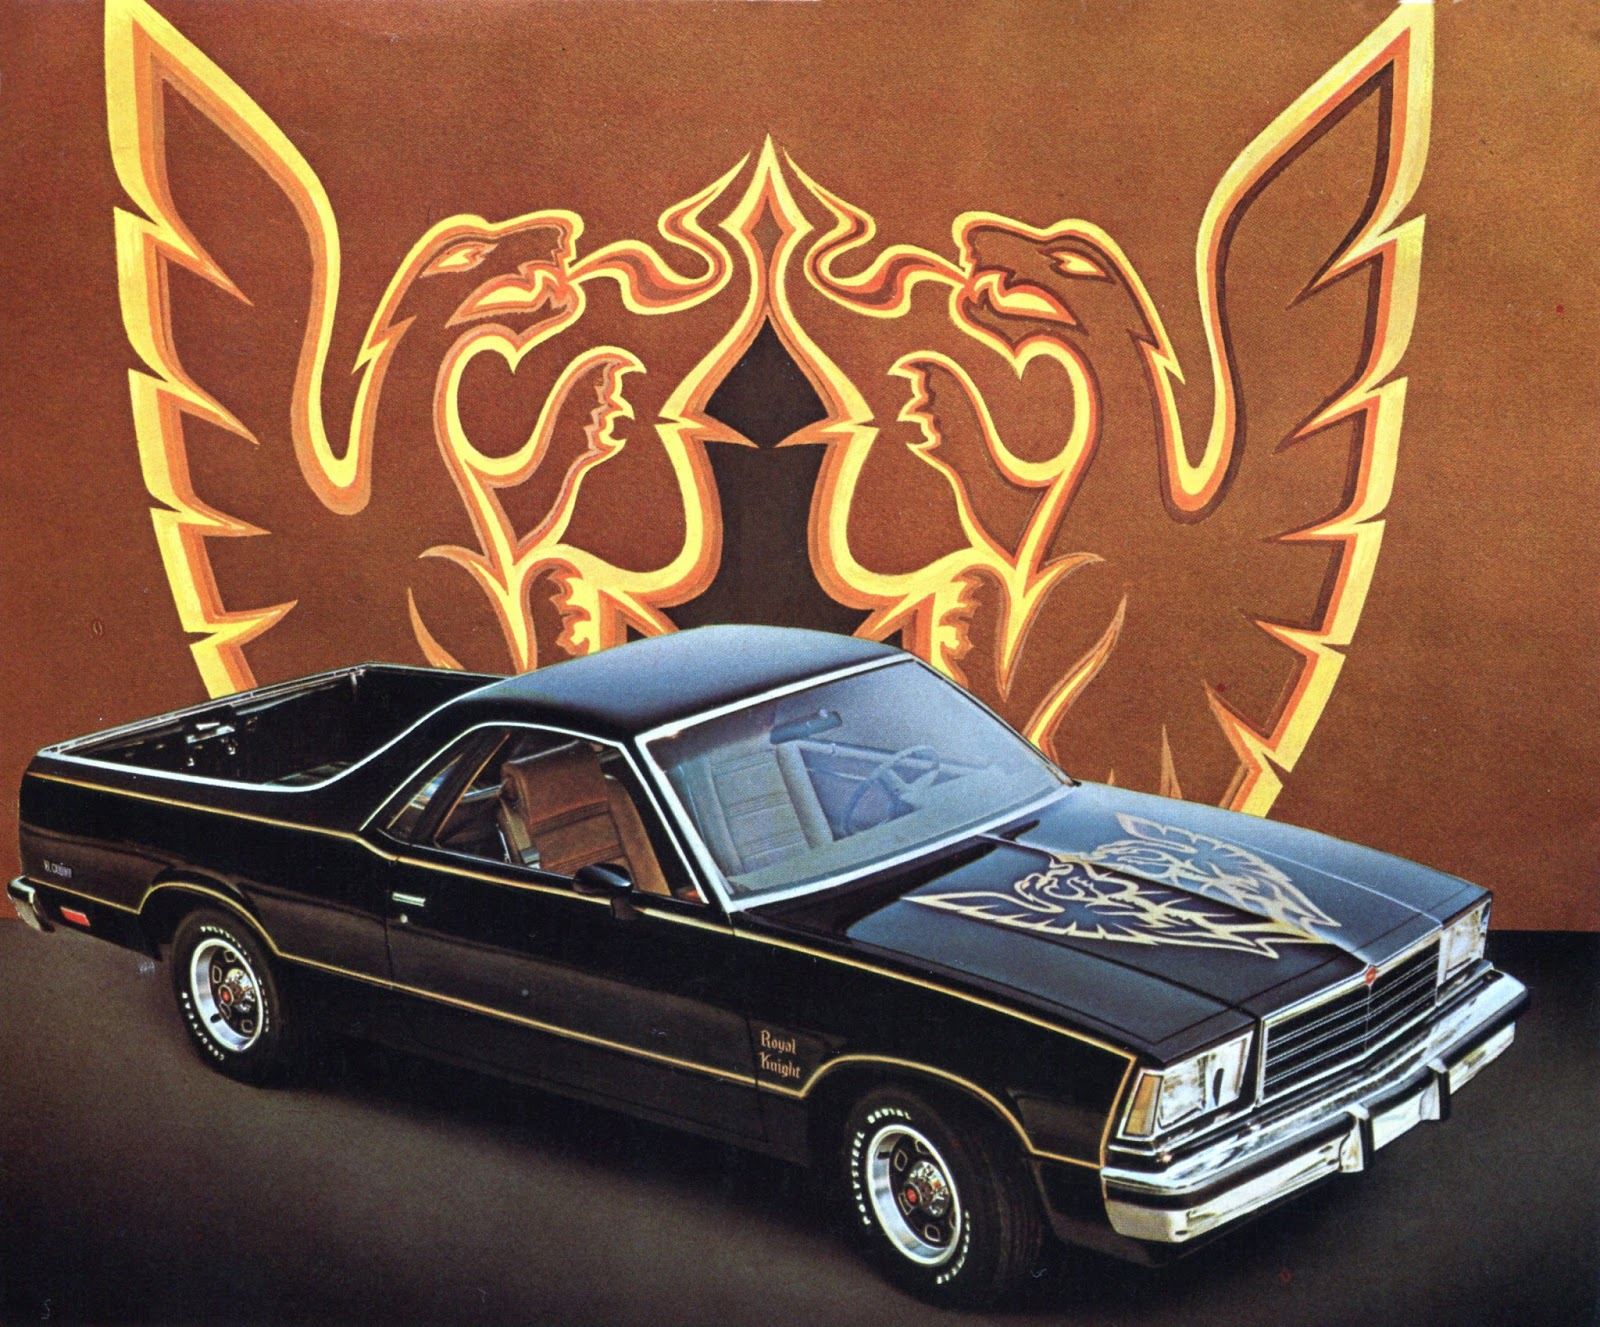 Ghost Cars El Camino Black Knight Phscollectorcarworld 1968 Wiring Diagram The Royal Came Out In 1979 And Was Basically Same Idea As Except For Name Change Subtle Color Differences